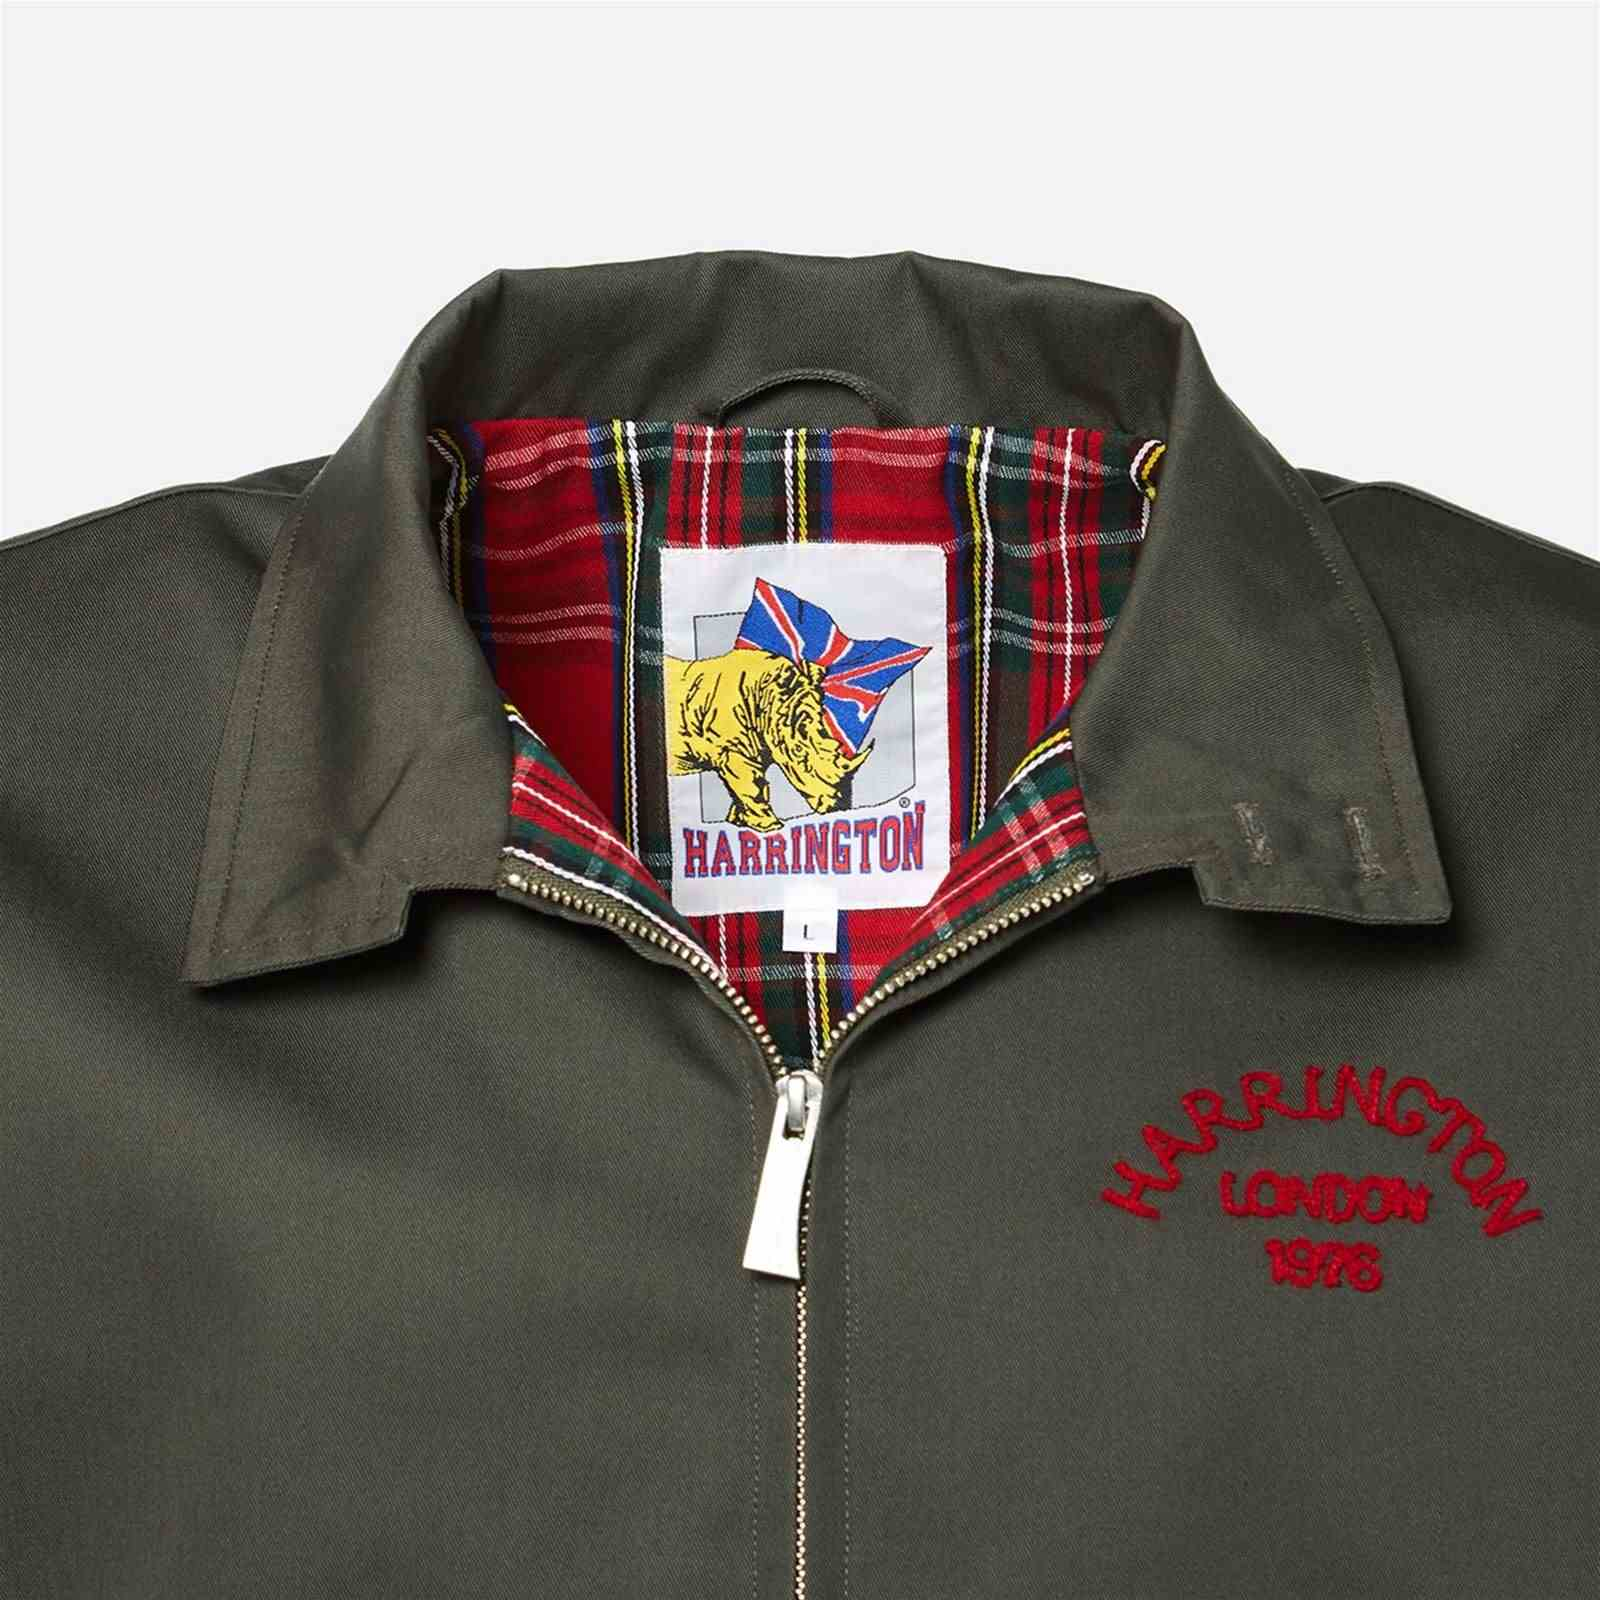 University Bombers Harrington Harrington University Bombers Kaki xHtwq